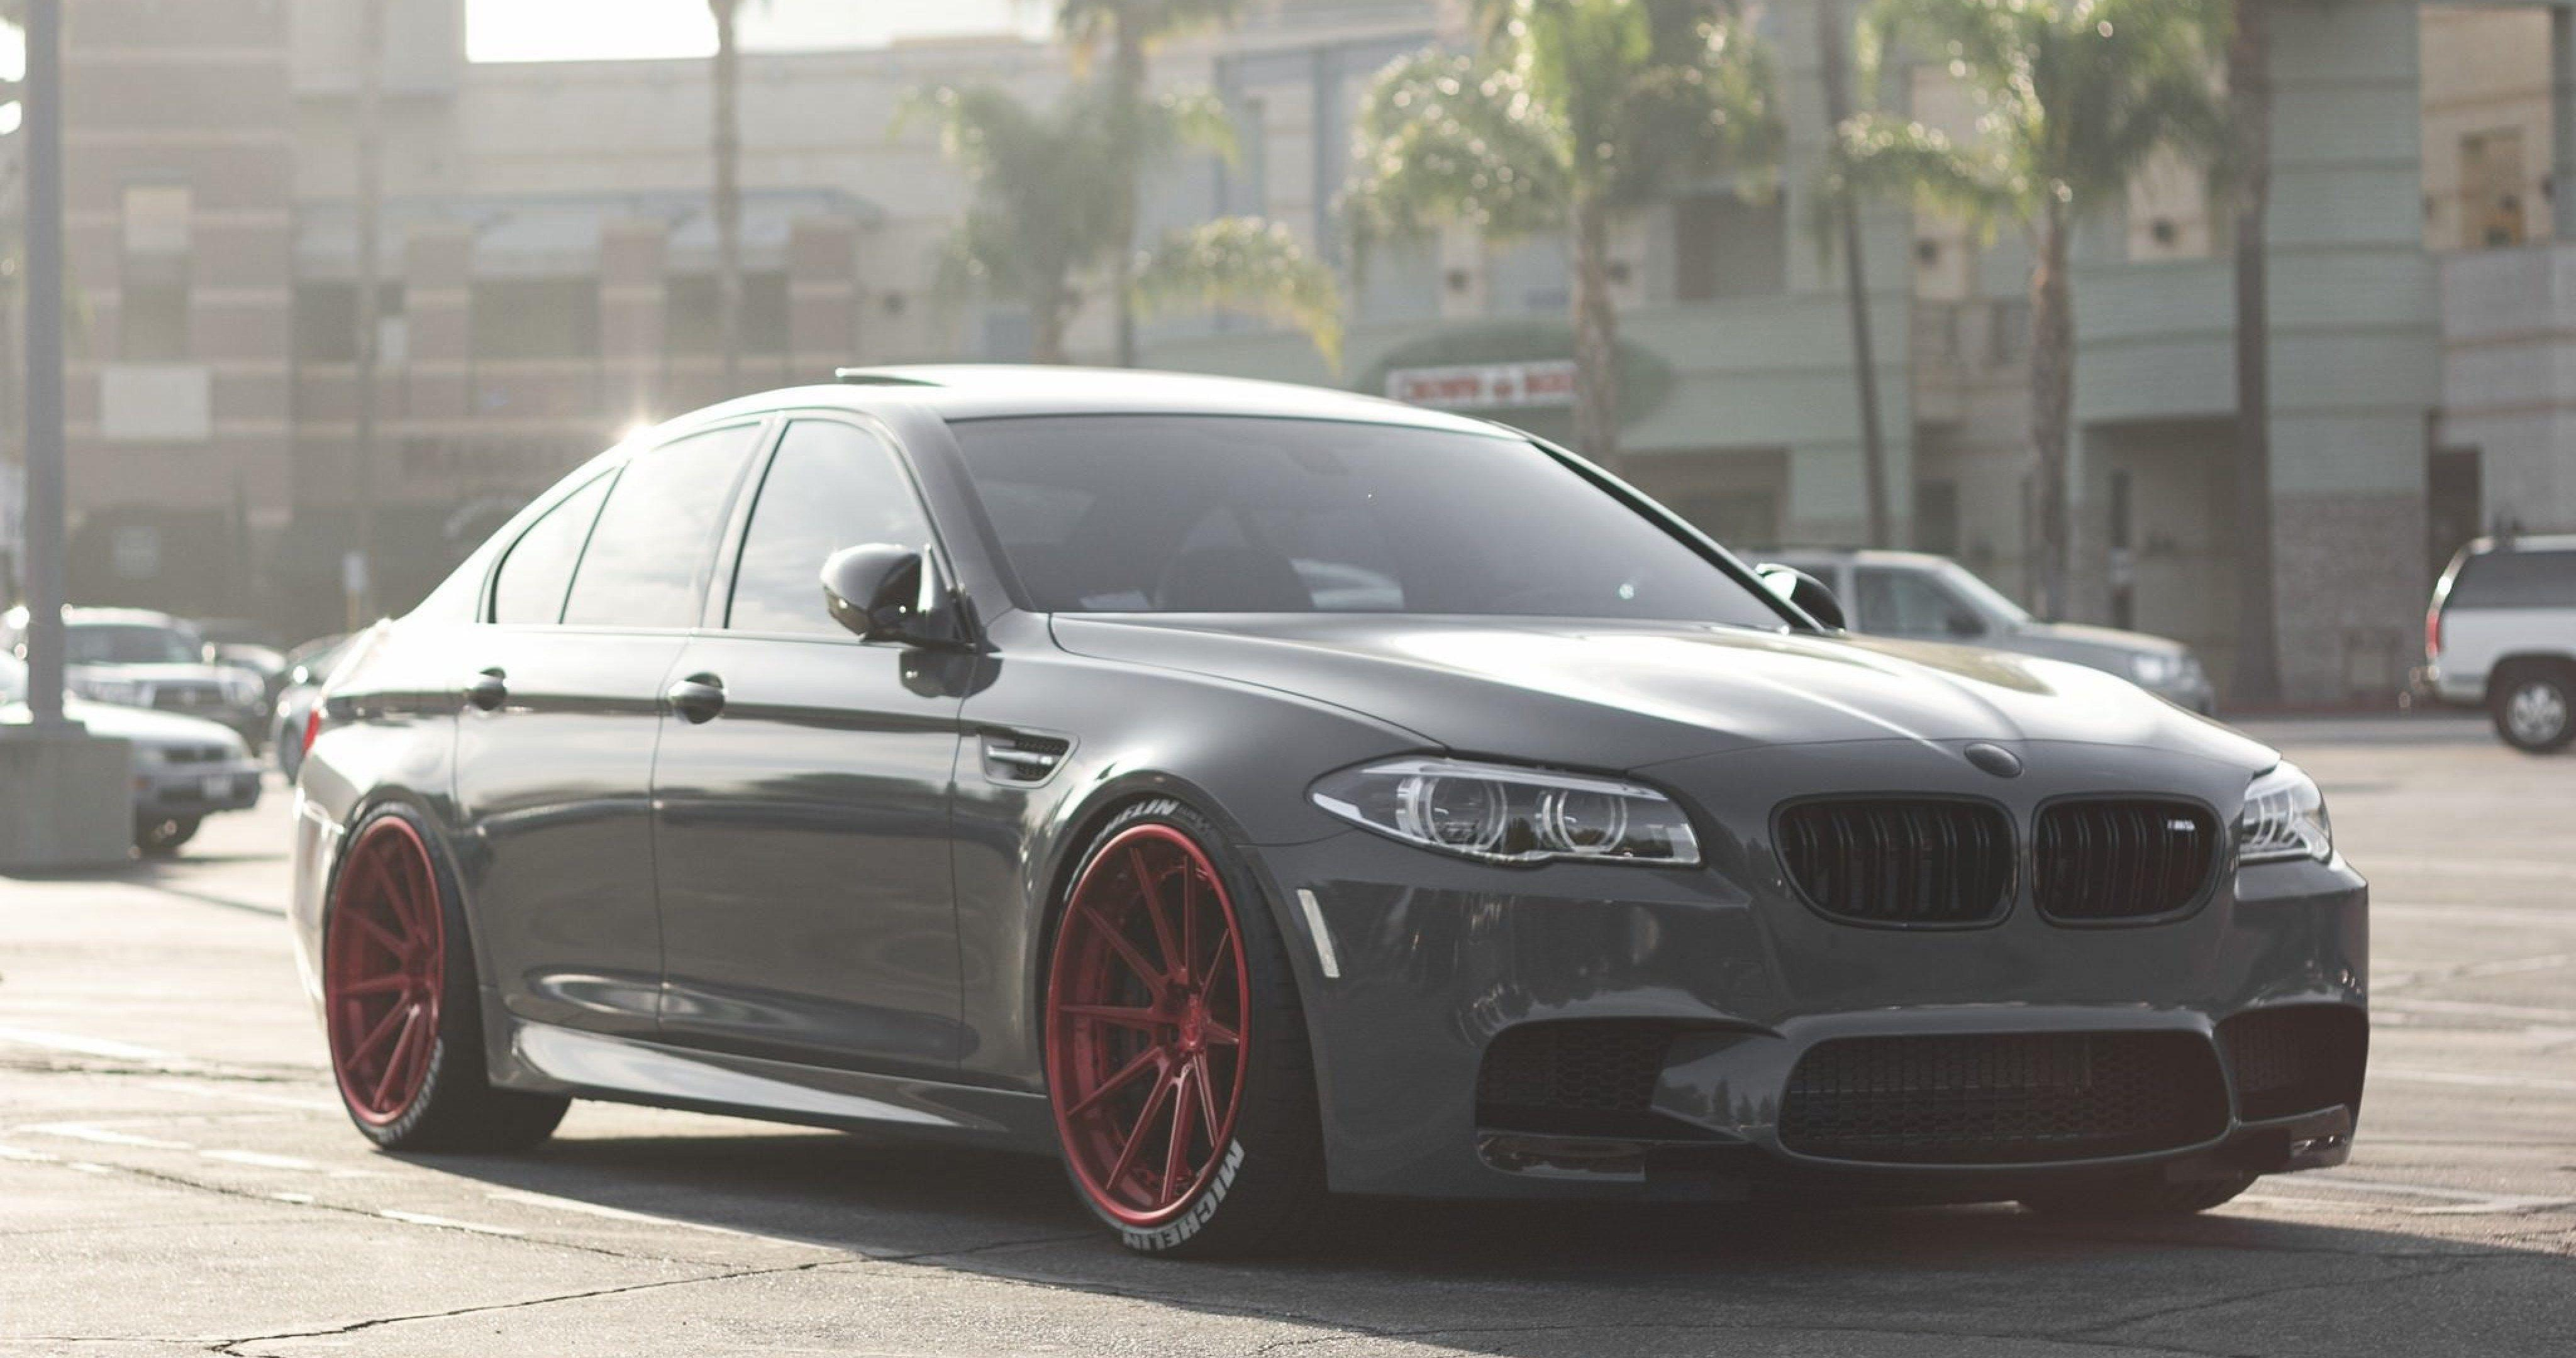 BMW M5 HD Wallpapers - Wallpaper Cave